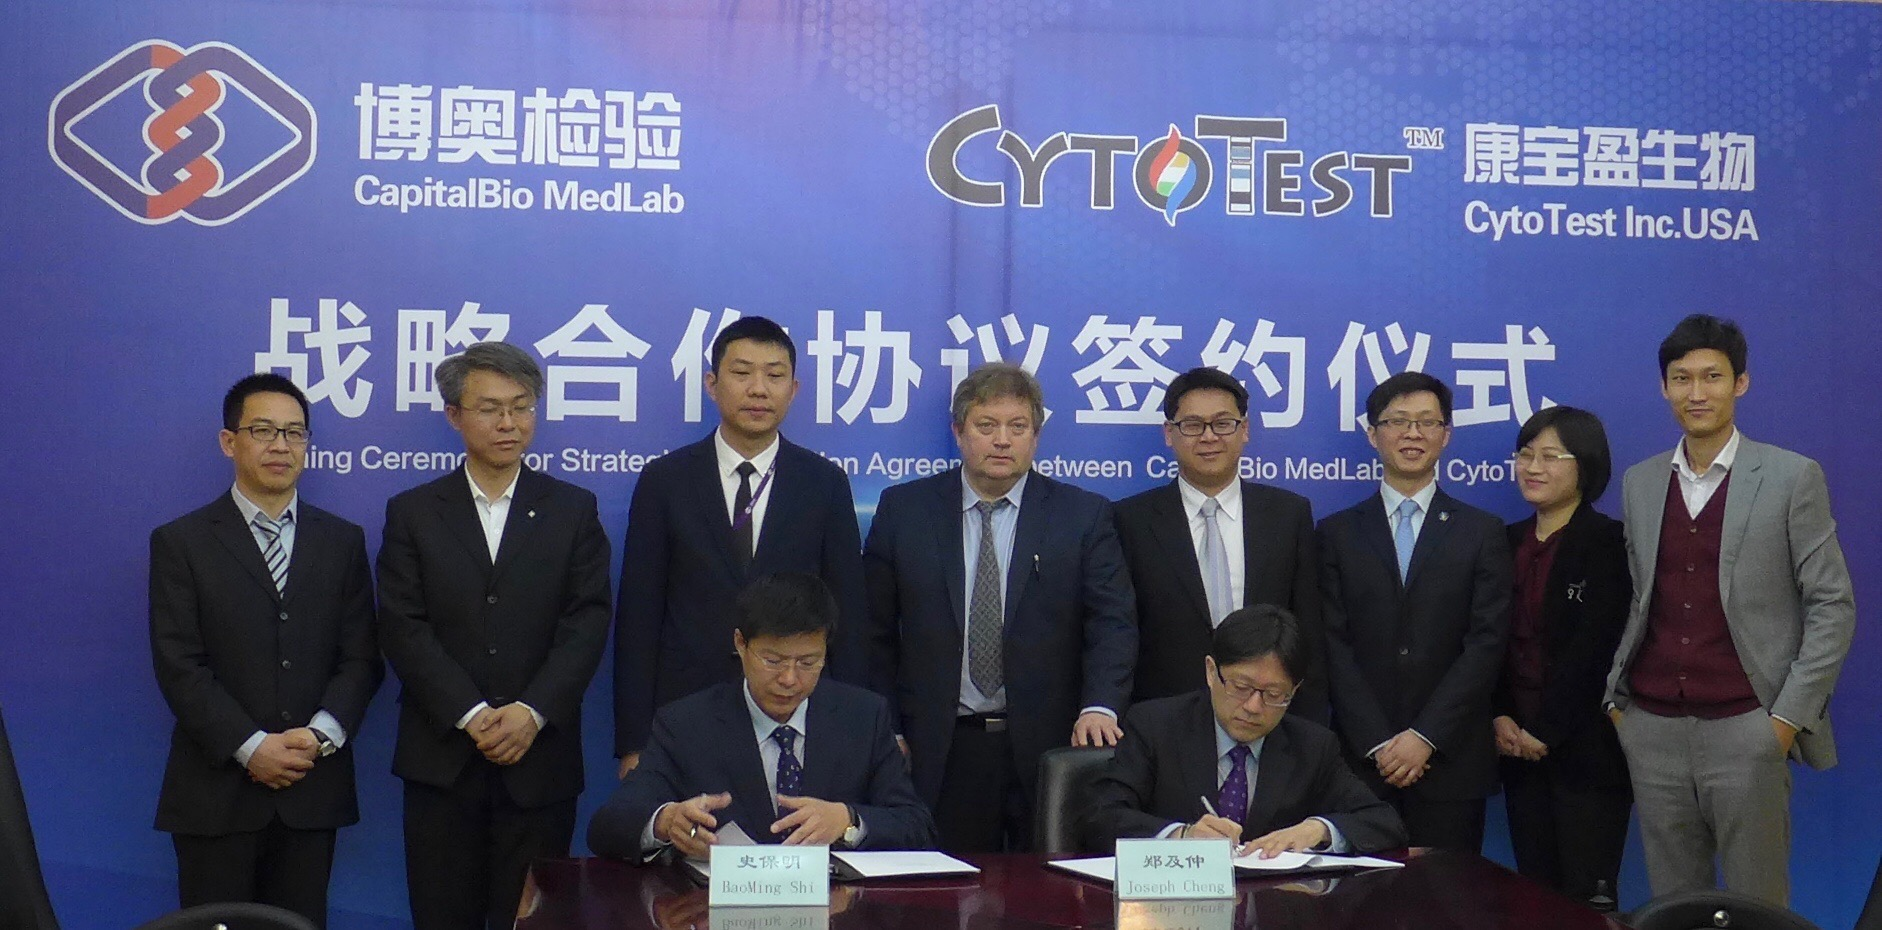 CytoTest and CapitalBio announce strategic collaborations